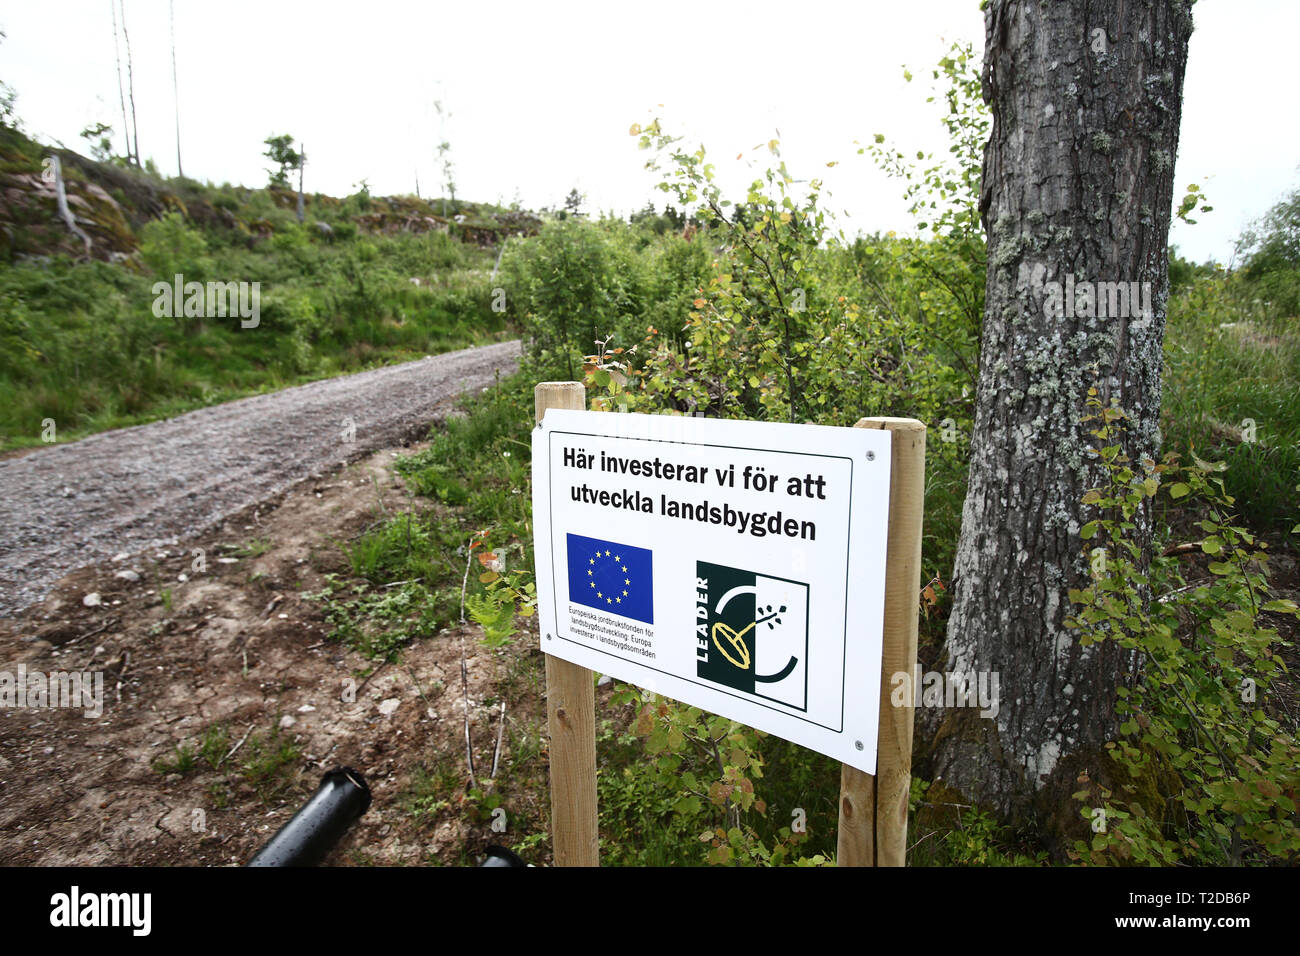 deal forces, with the help of the EU, have renovated an exercise track. - Stock Image